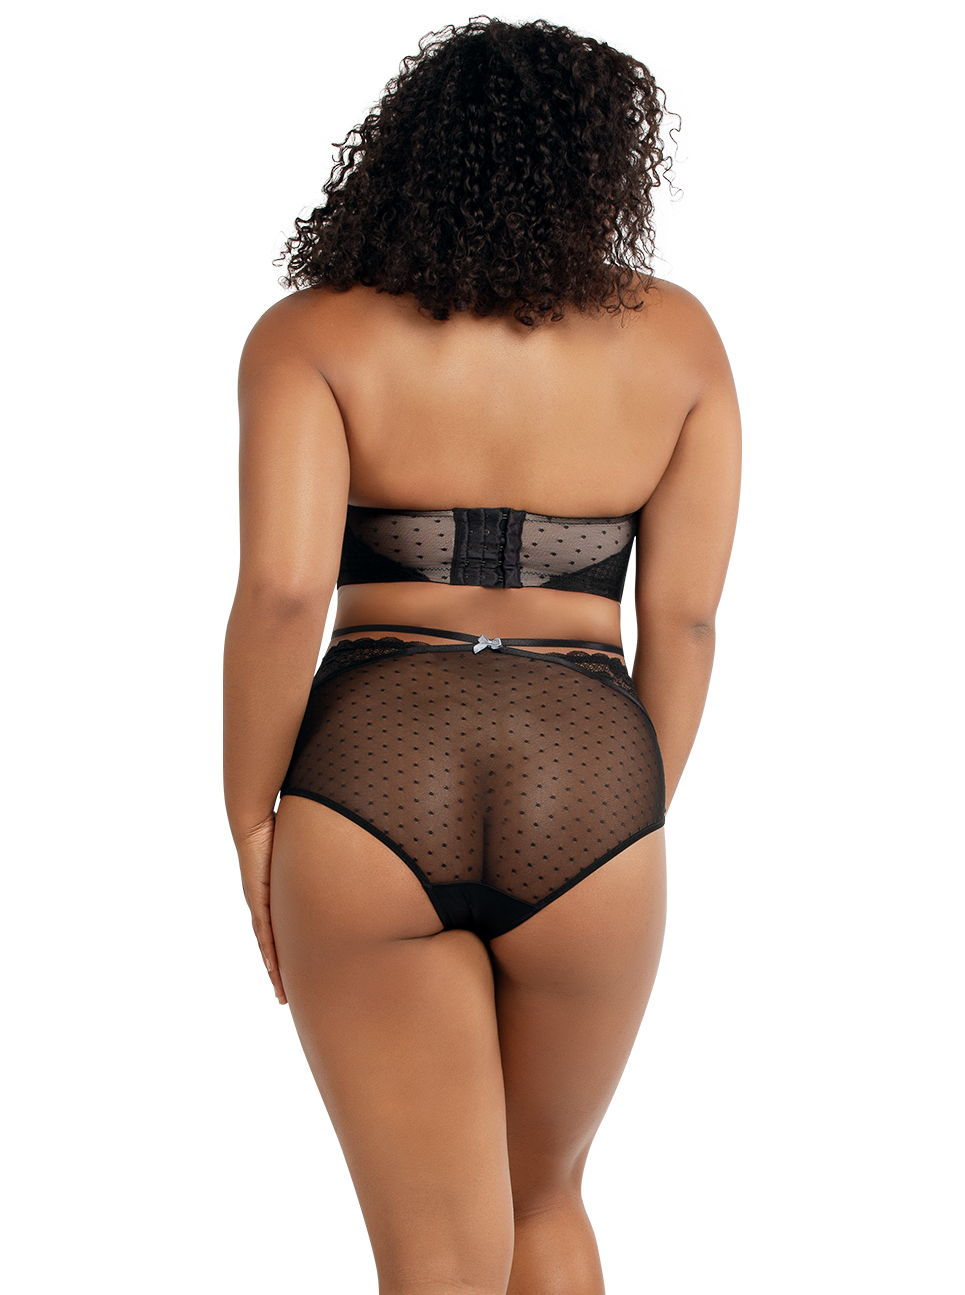 PARFAIT Amber StraplessBraA16812 HighwaistedBriefA1685 Black Back - Amber Highwaisted Brief Black A1685